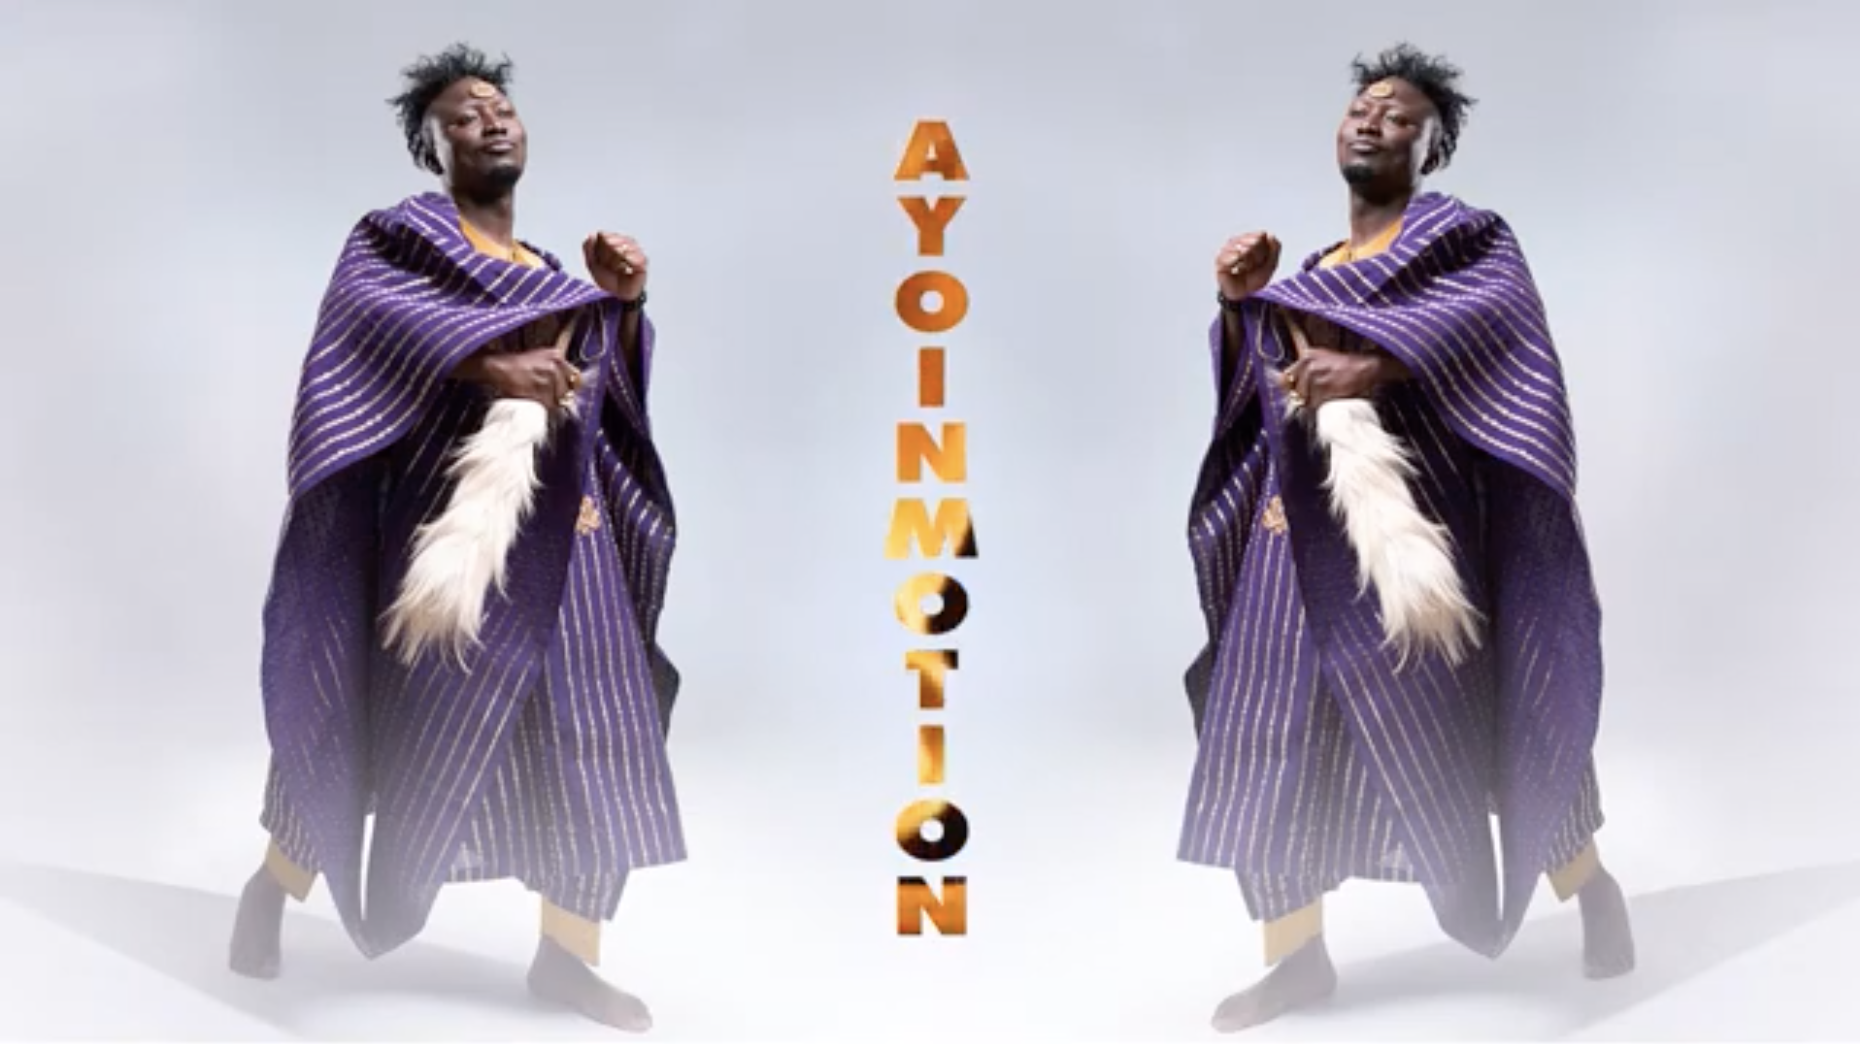 A Black man (the singer Ayoinmotion) is wearing a purple outfit. The image is mirrored on the other side.